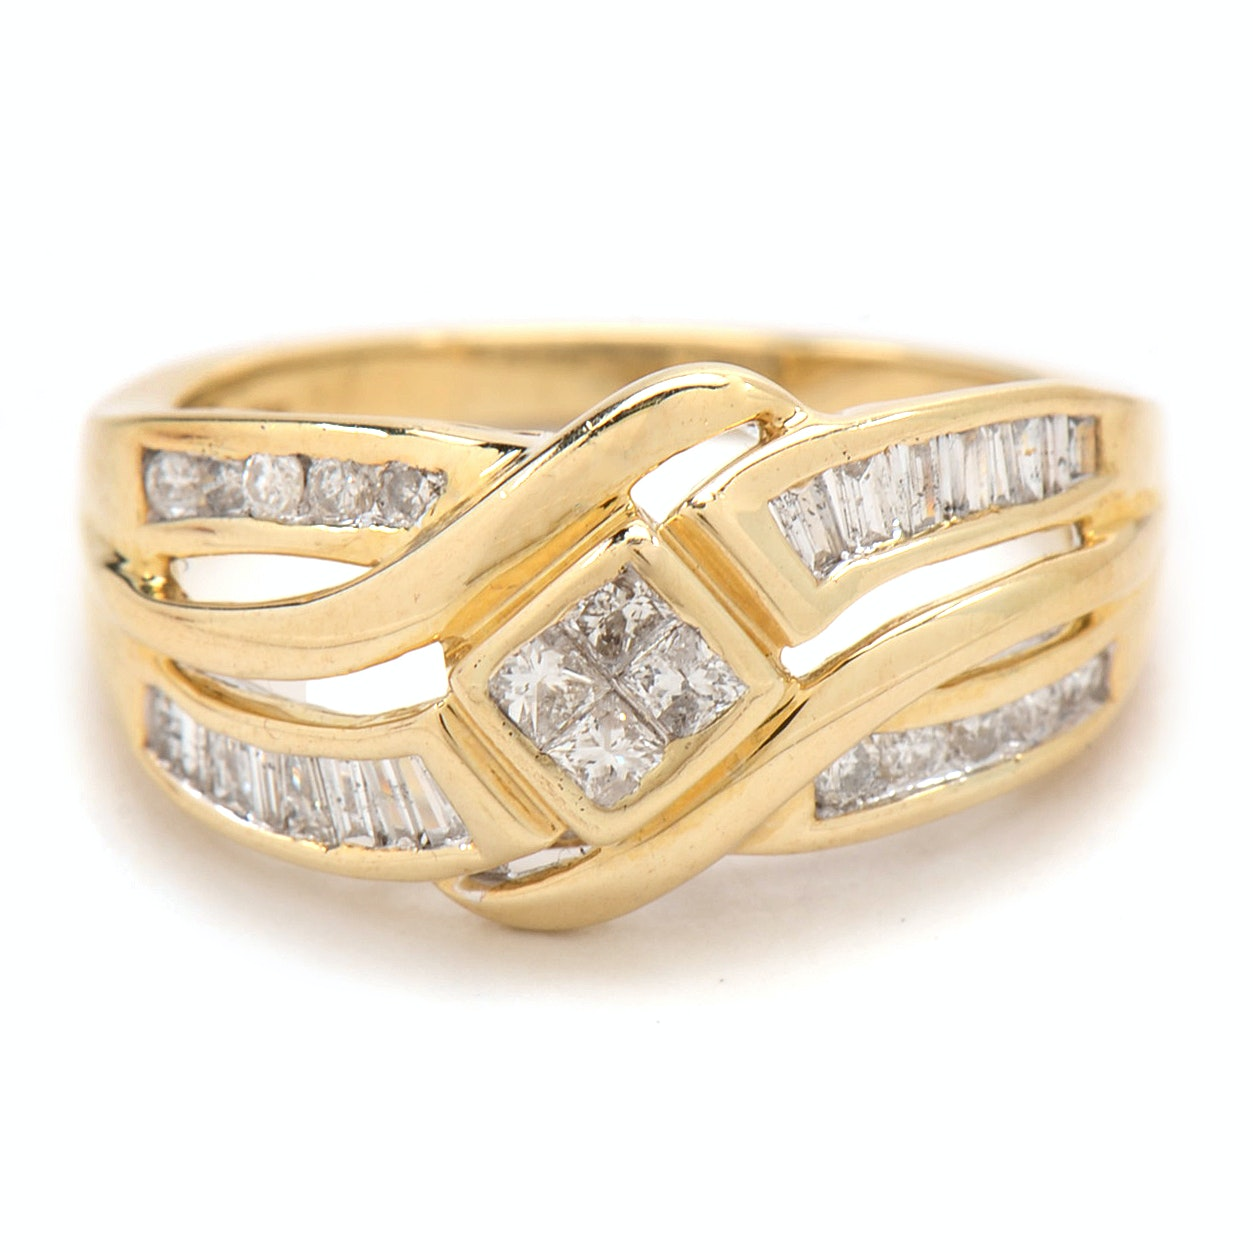 10k yellow gold princess cut and baguette ring ebth